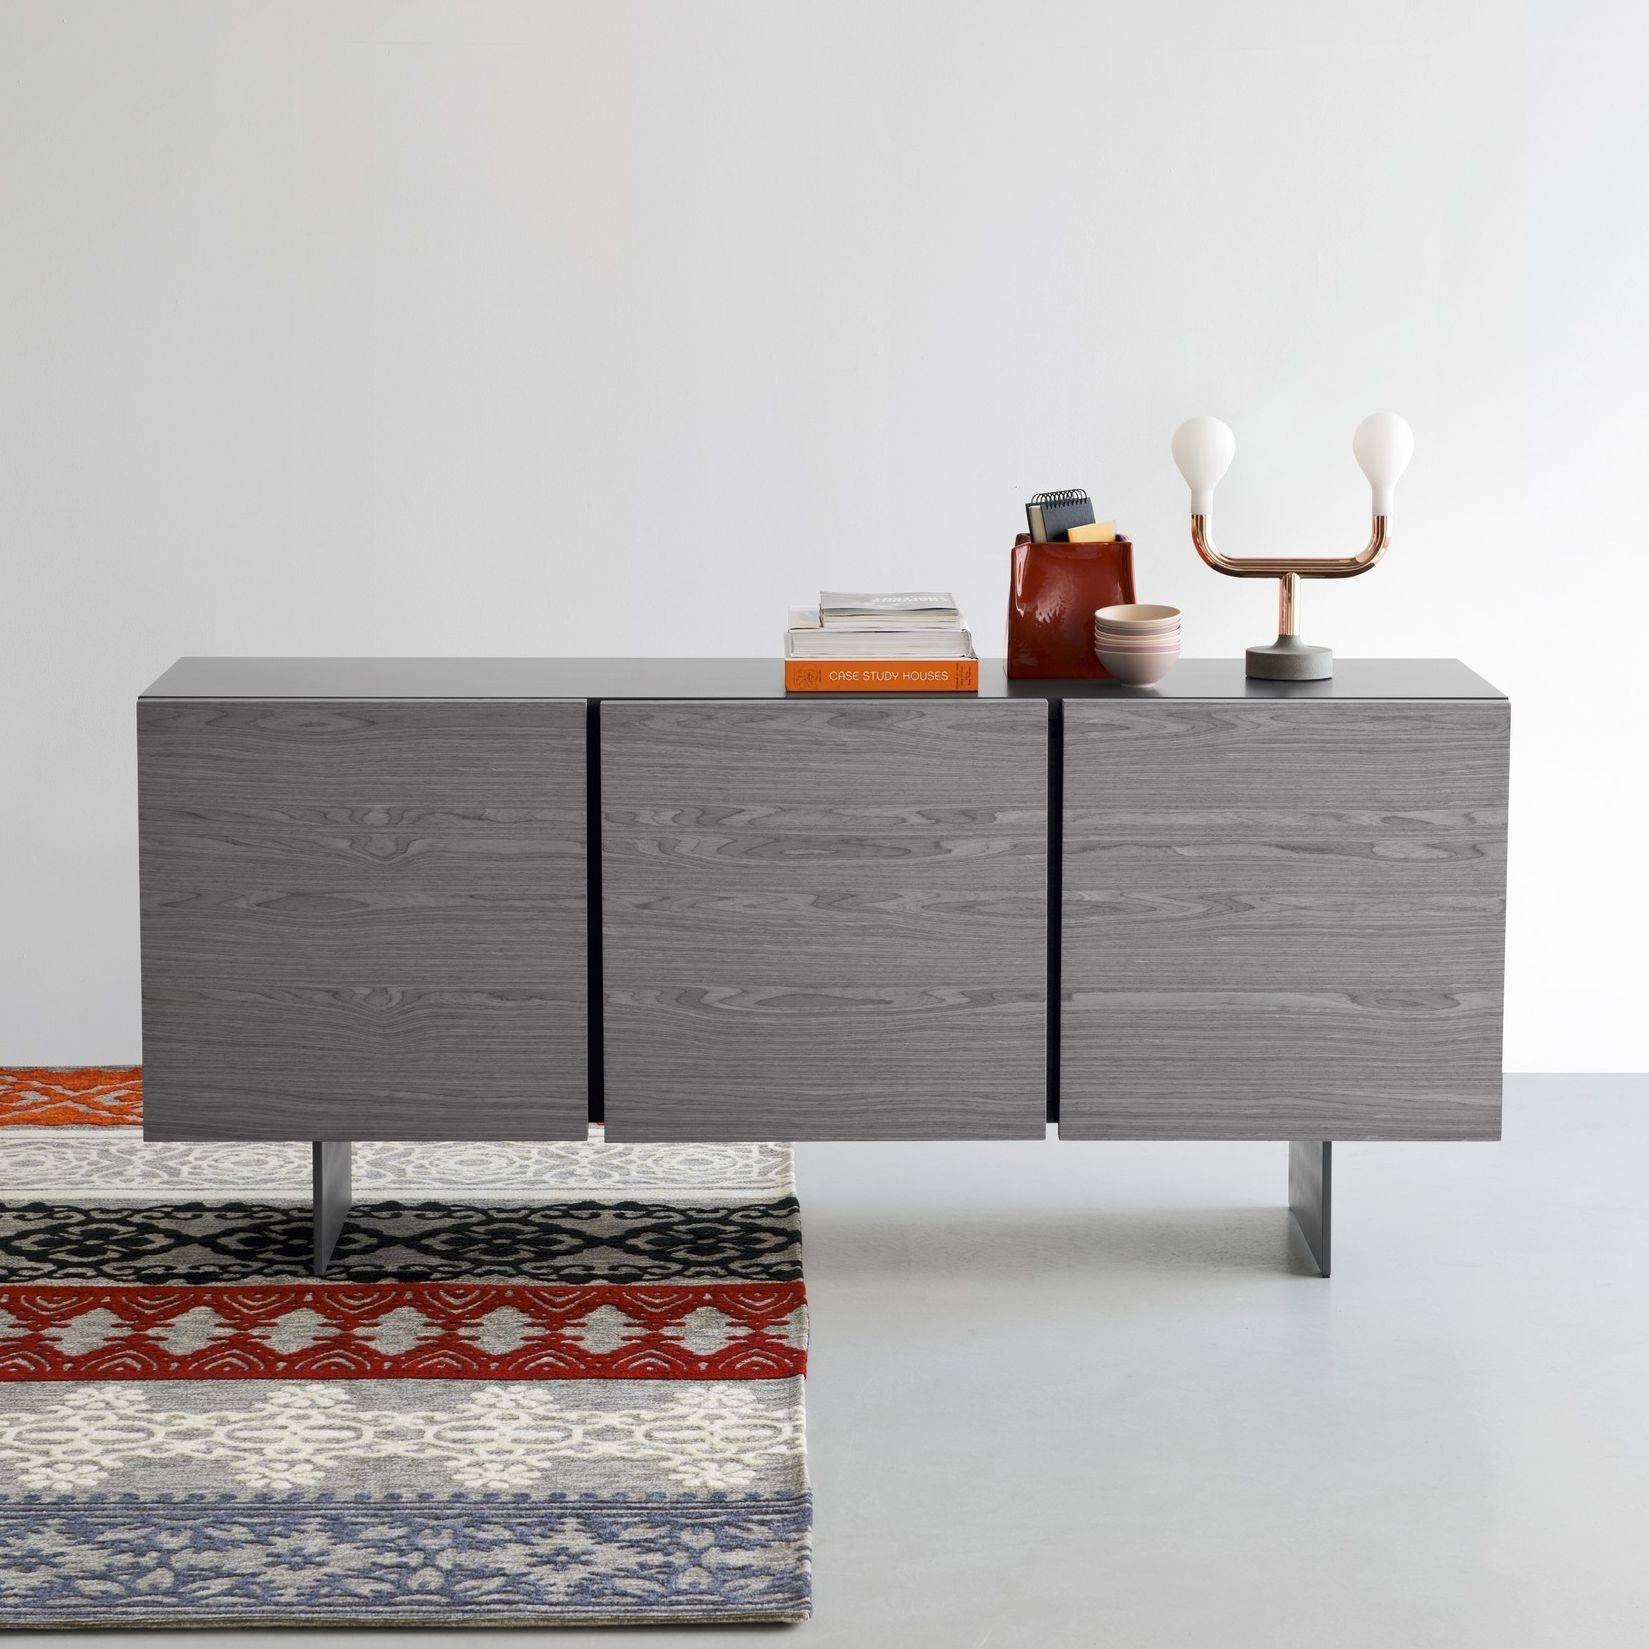 Sipario Modern Sideboard | Calligaris With Modern Sideboard Furniture (View 9 of 15)